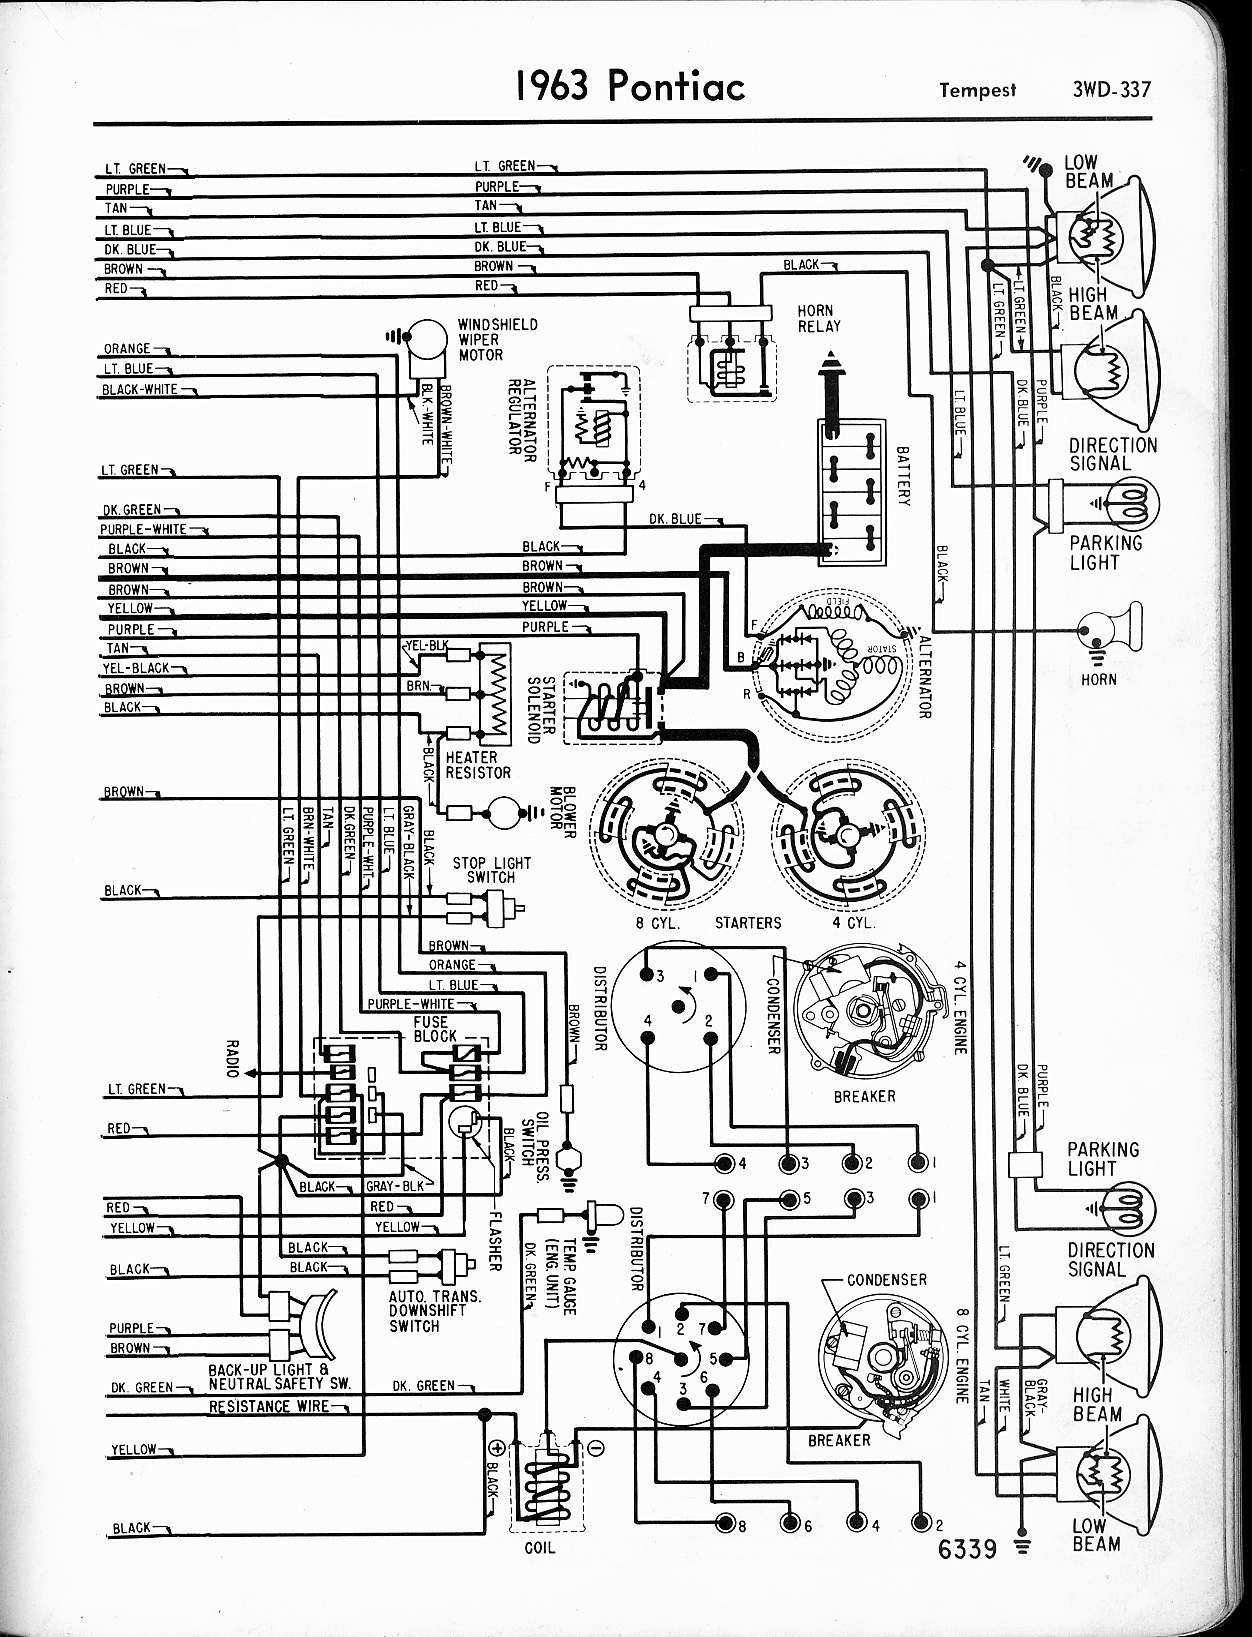 Western Star Cat C15 Wiring Diagram Free Picture